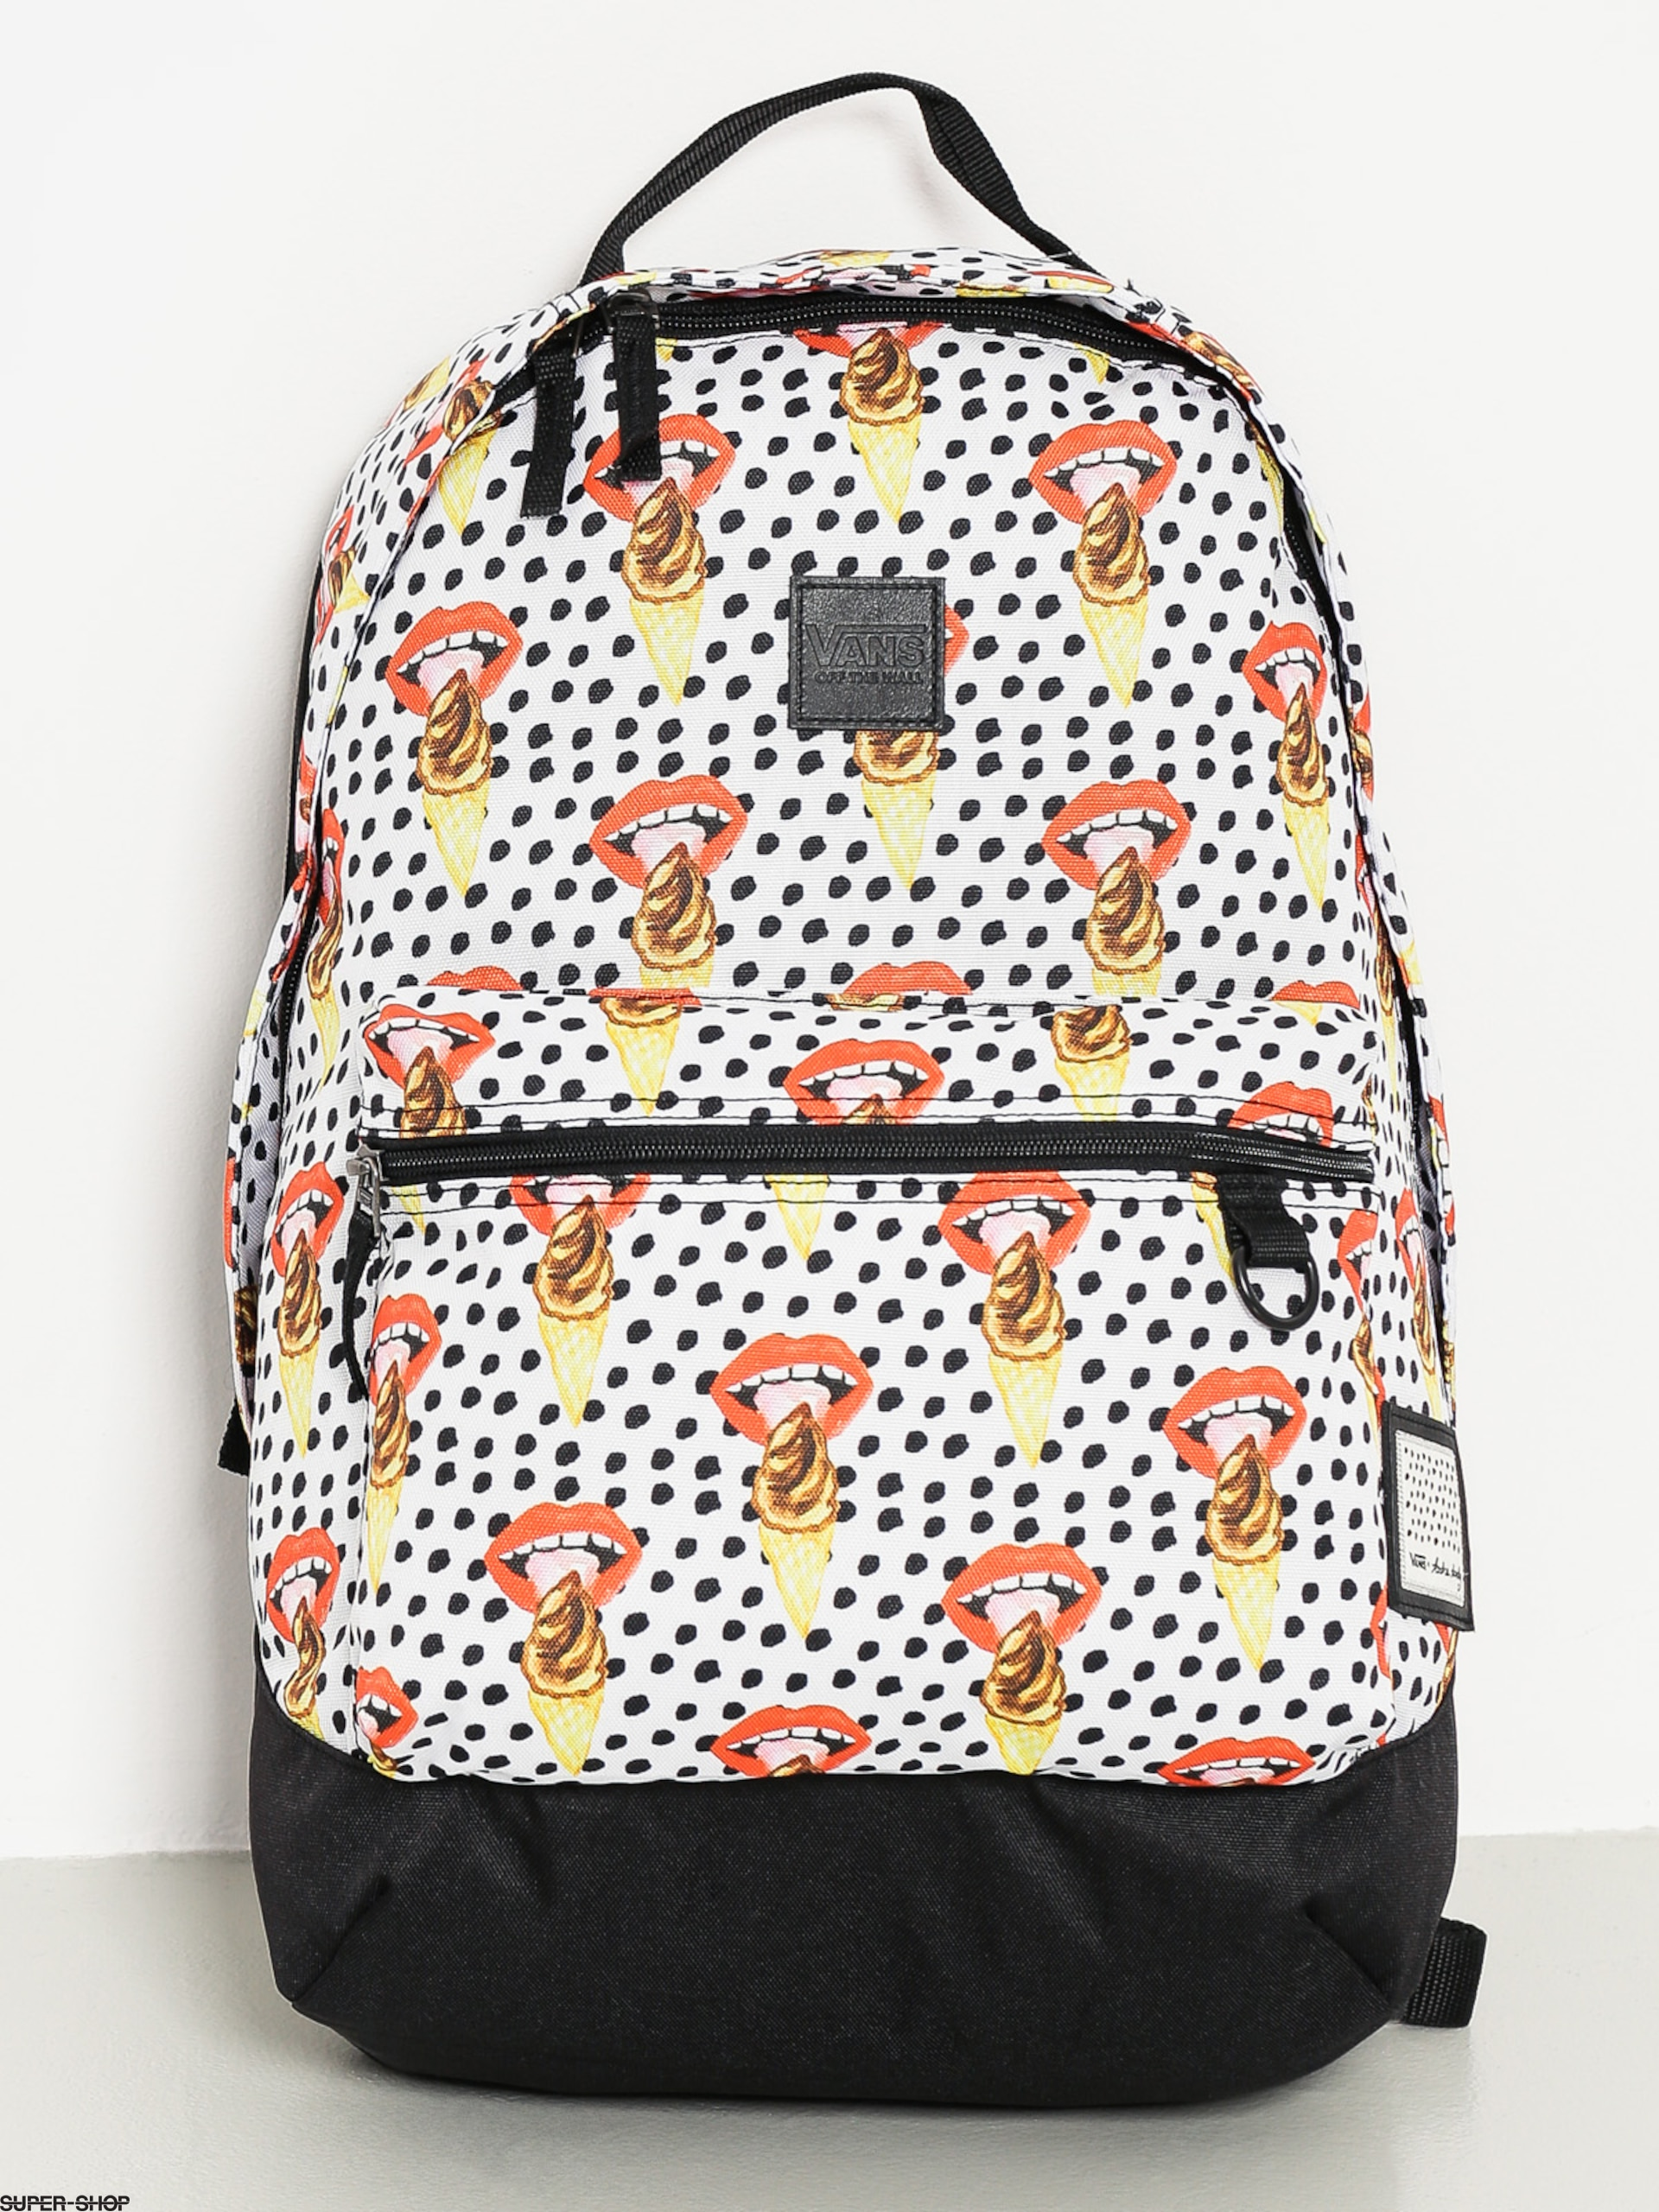 Vans Backpack Kendra Tiburon (i scream)